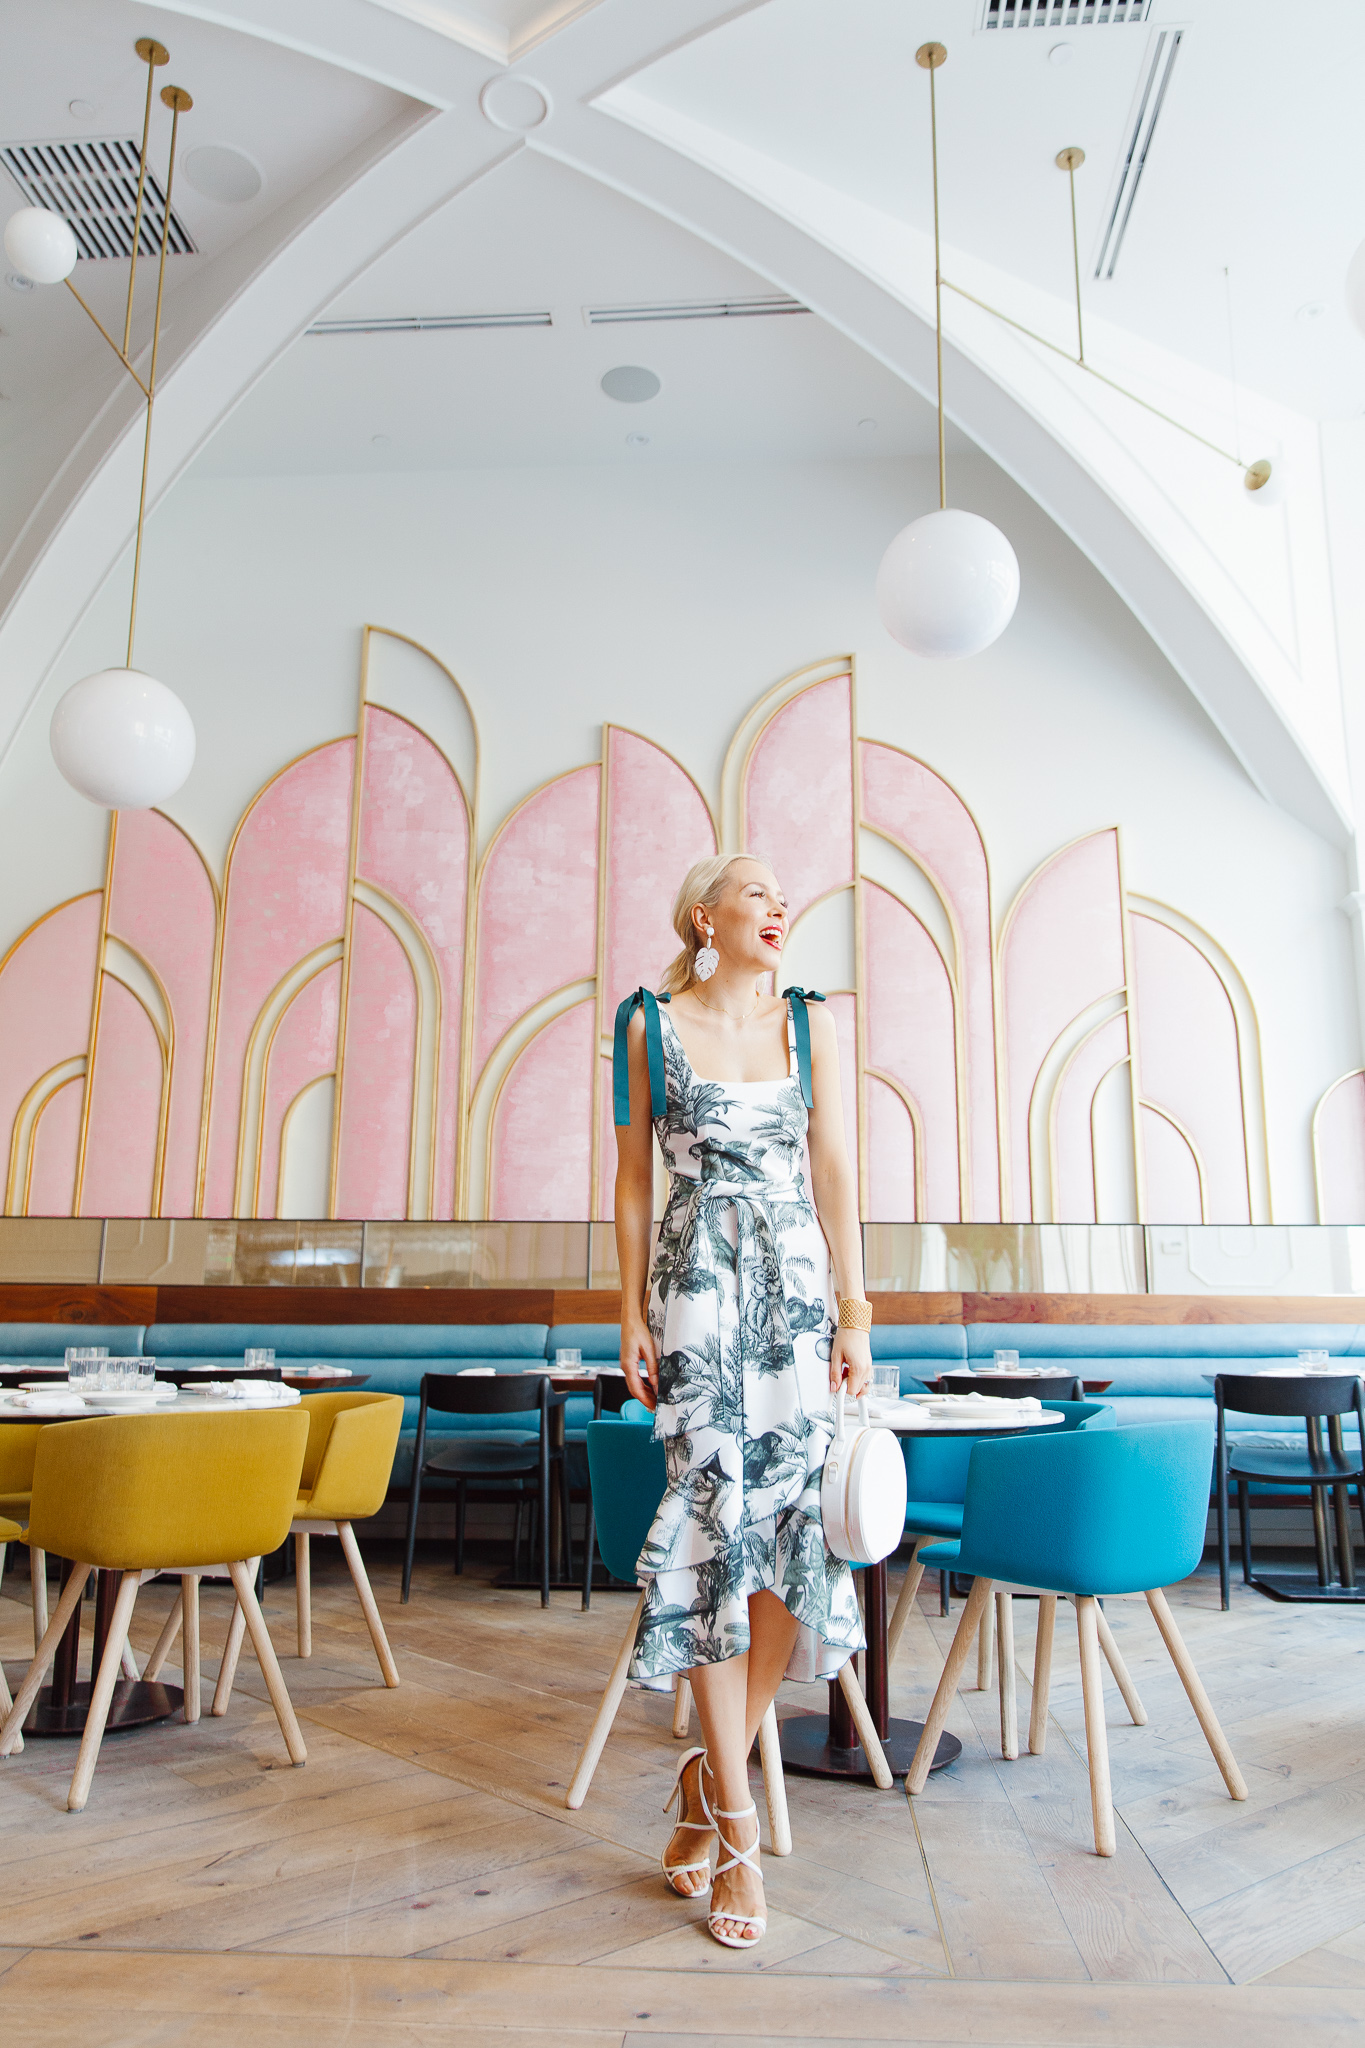 Toronto Travel Guide featured by top San Francisco fashion blogger Lombard and Fifth